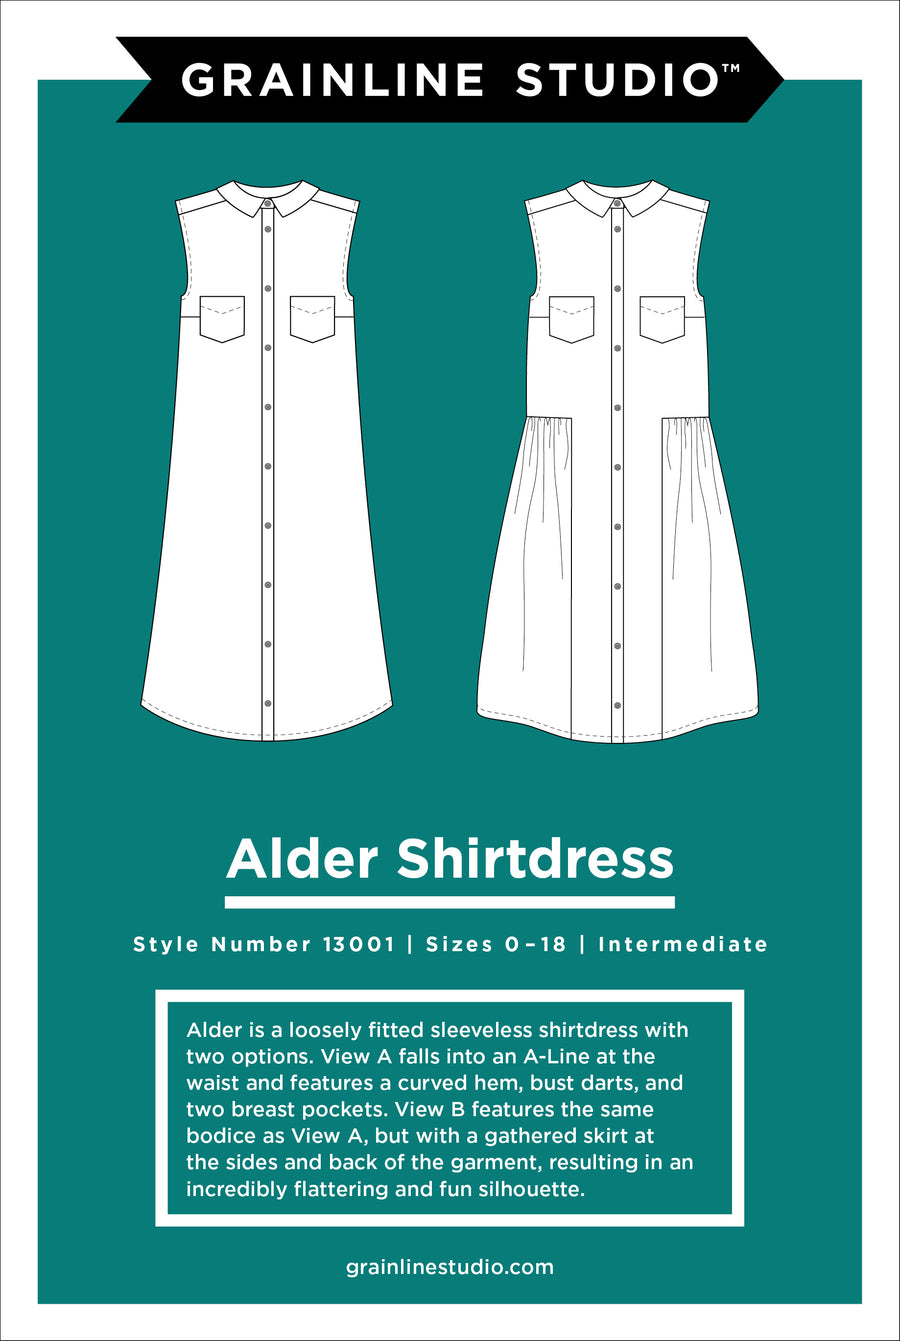 Grainline Studio - Alder Shirtdress